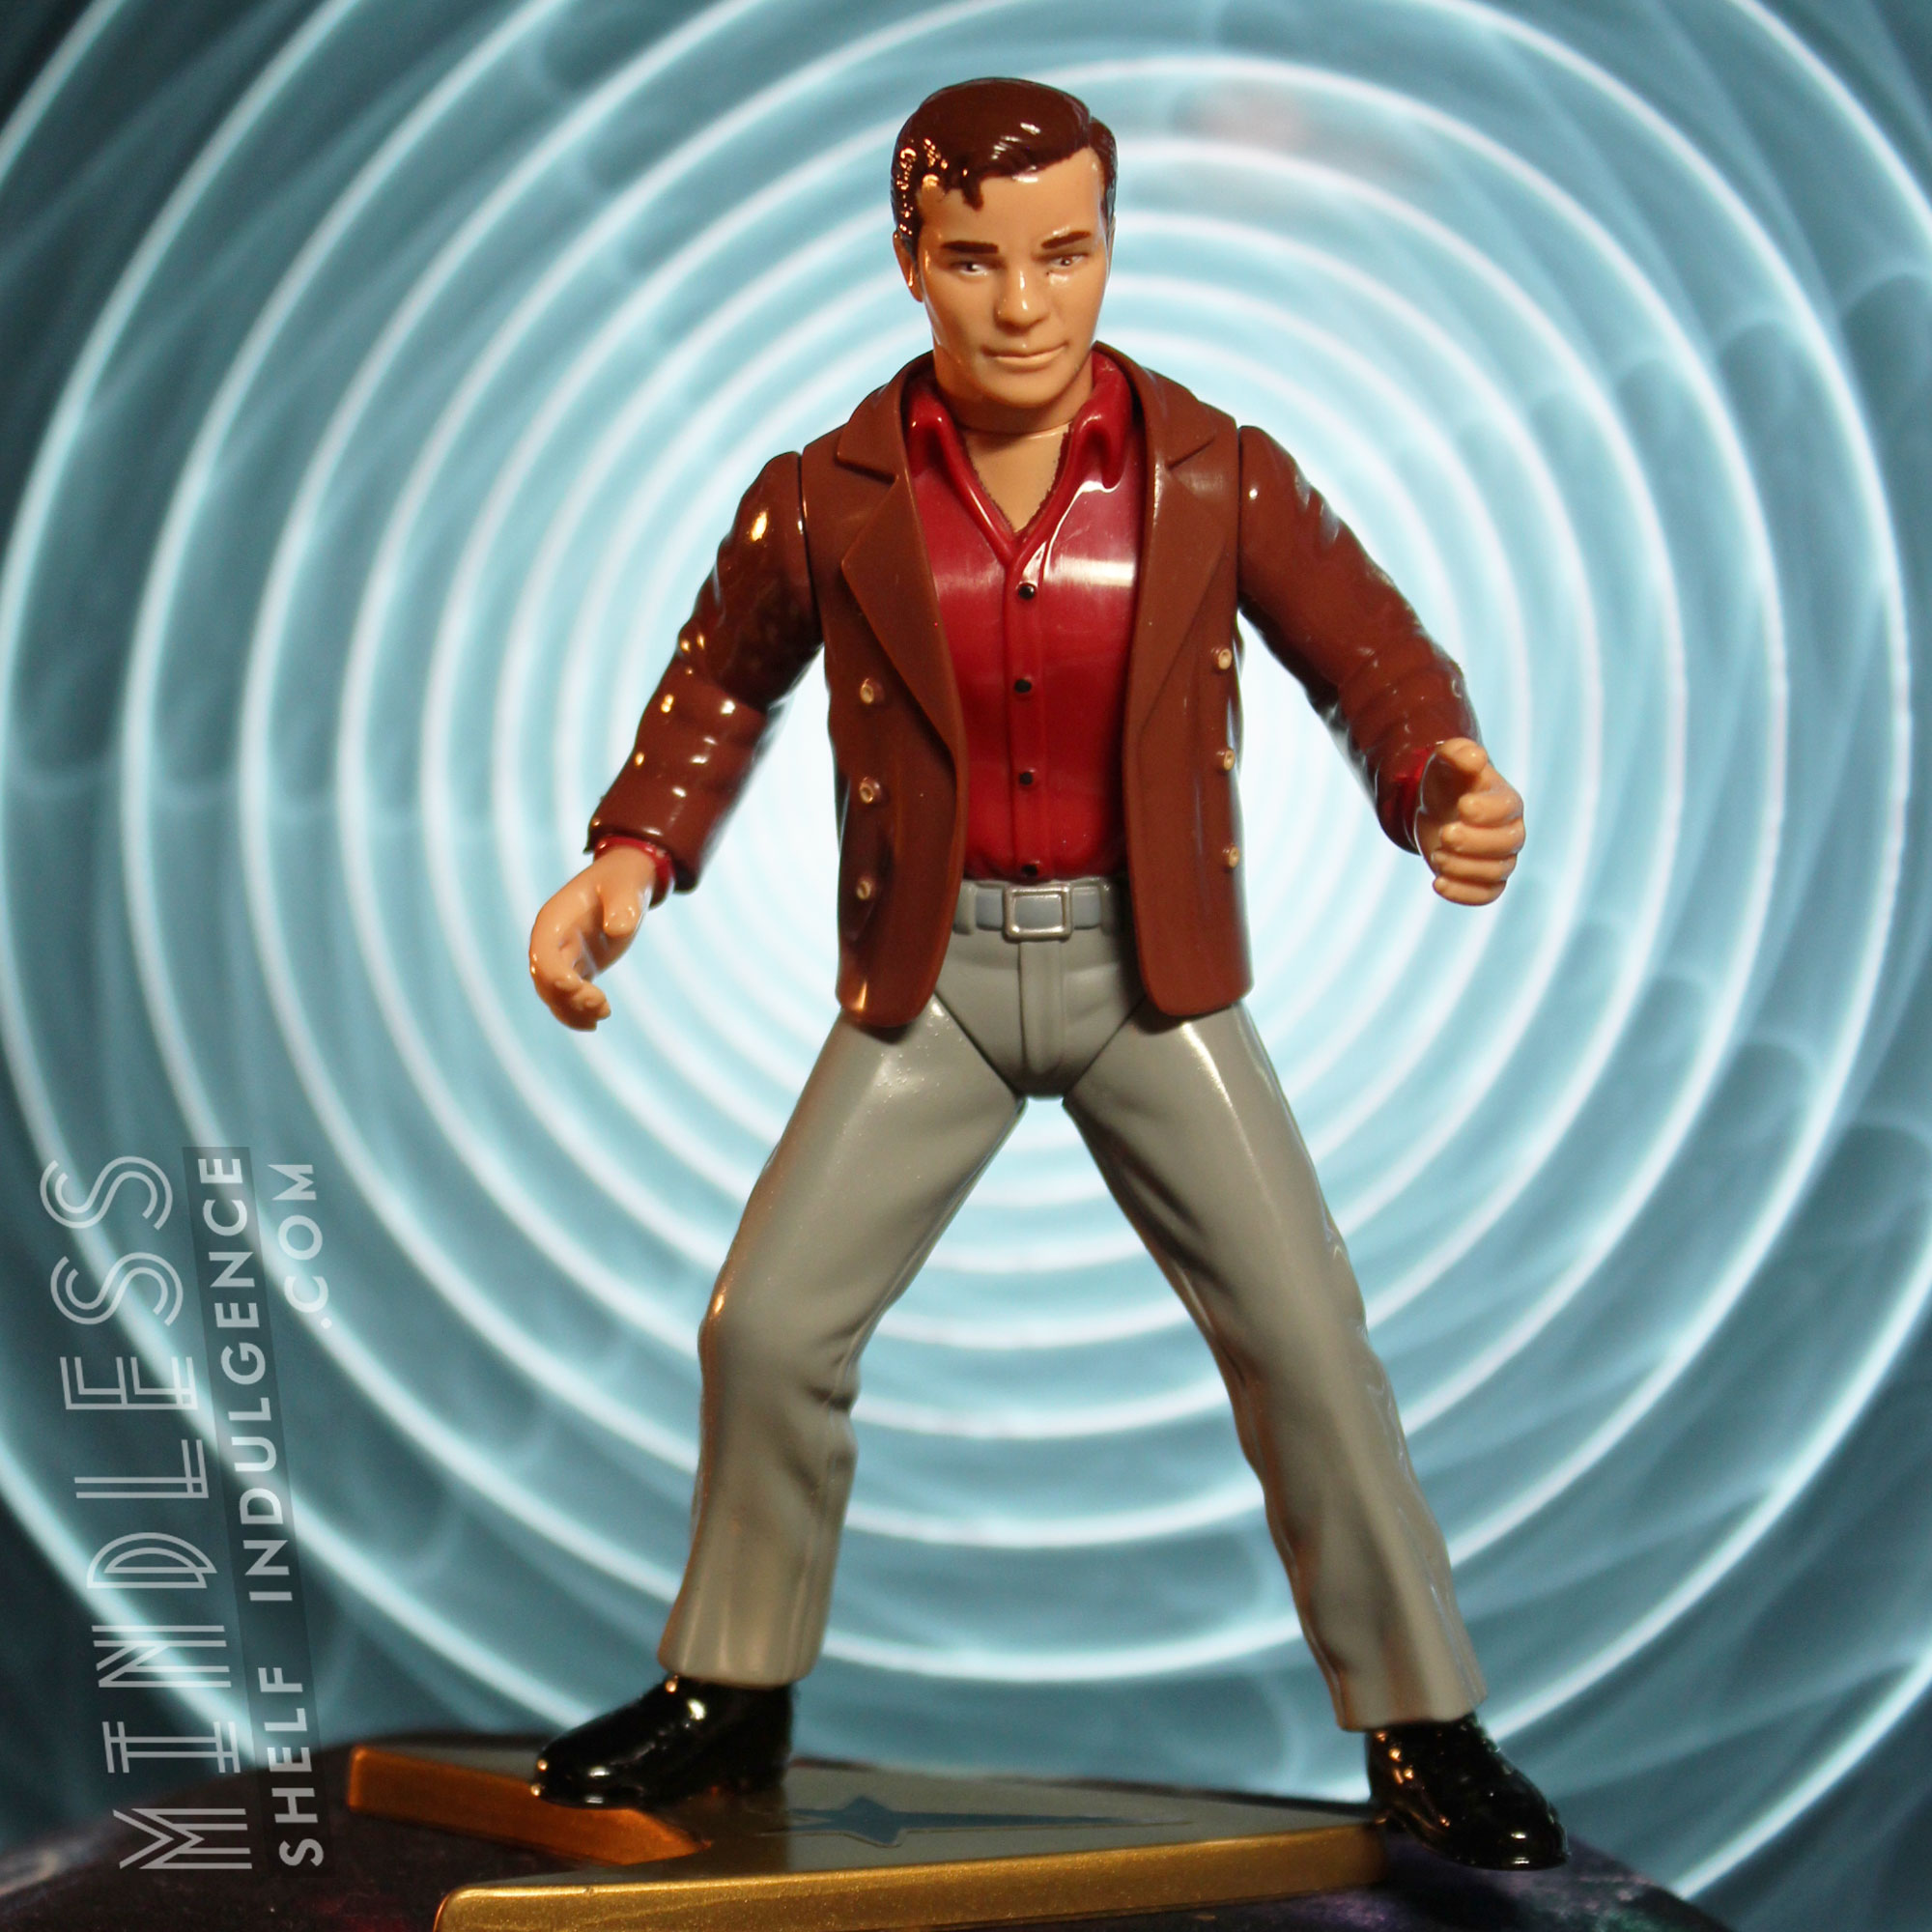 Kirk in 'City on the Edge of Forever'